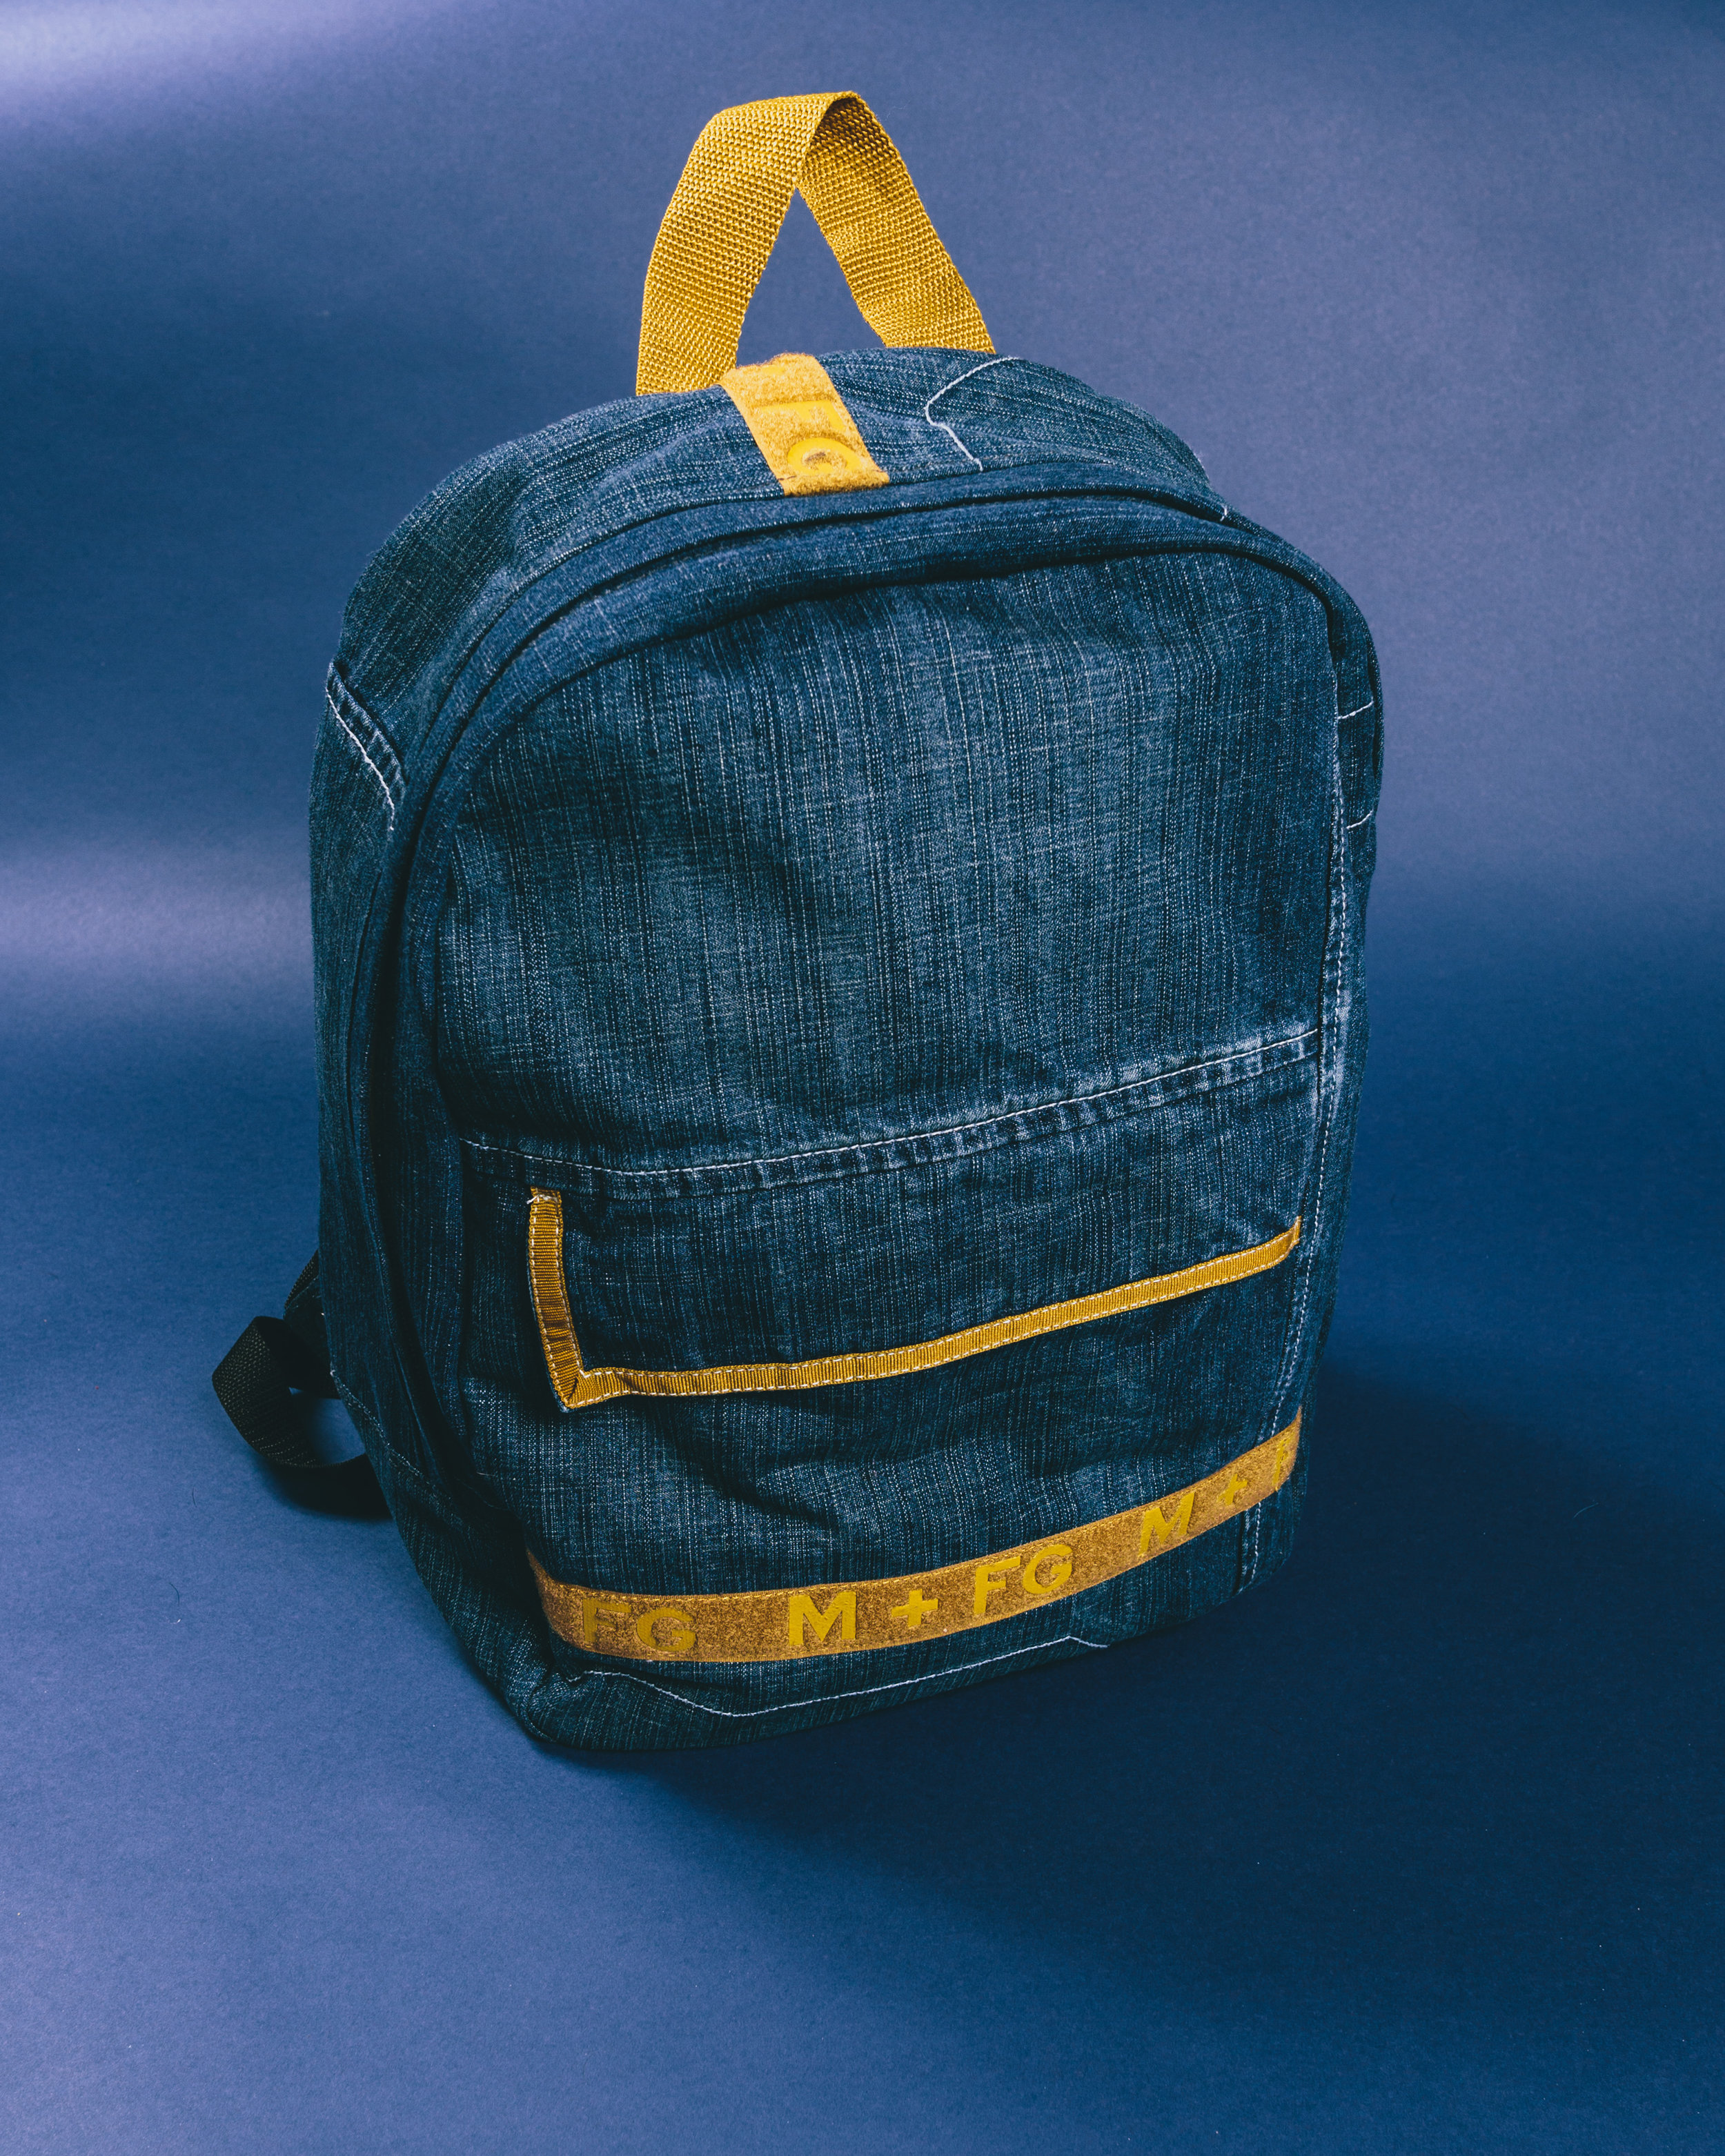 Girbaud Backpack - Made from a pair of baggy jeans from the brand Girbaud